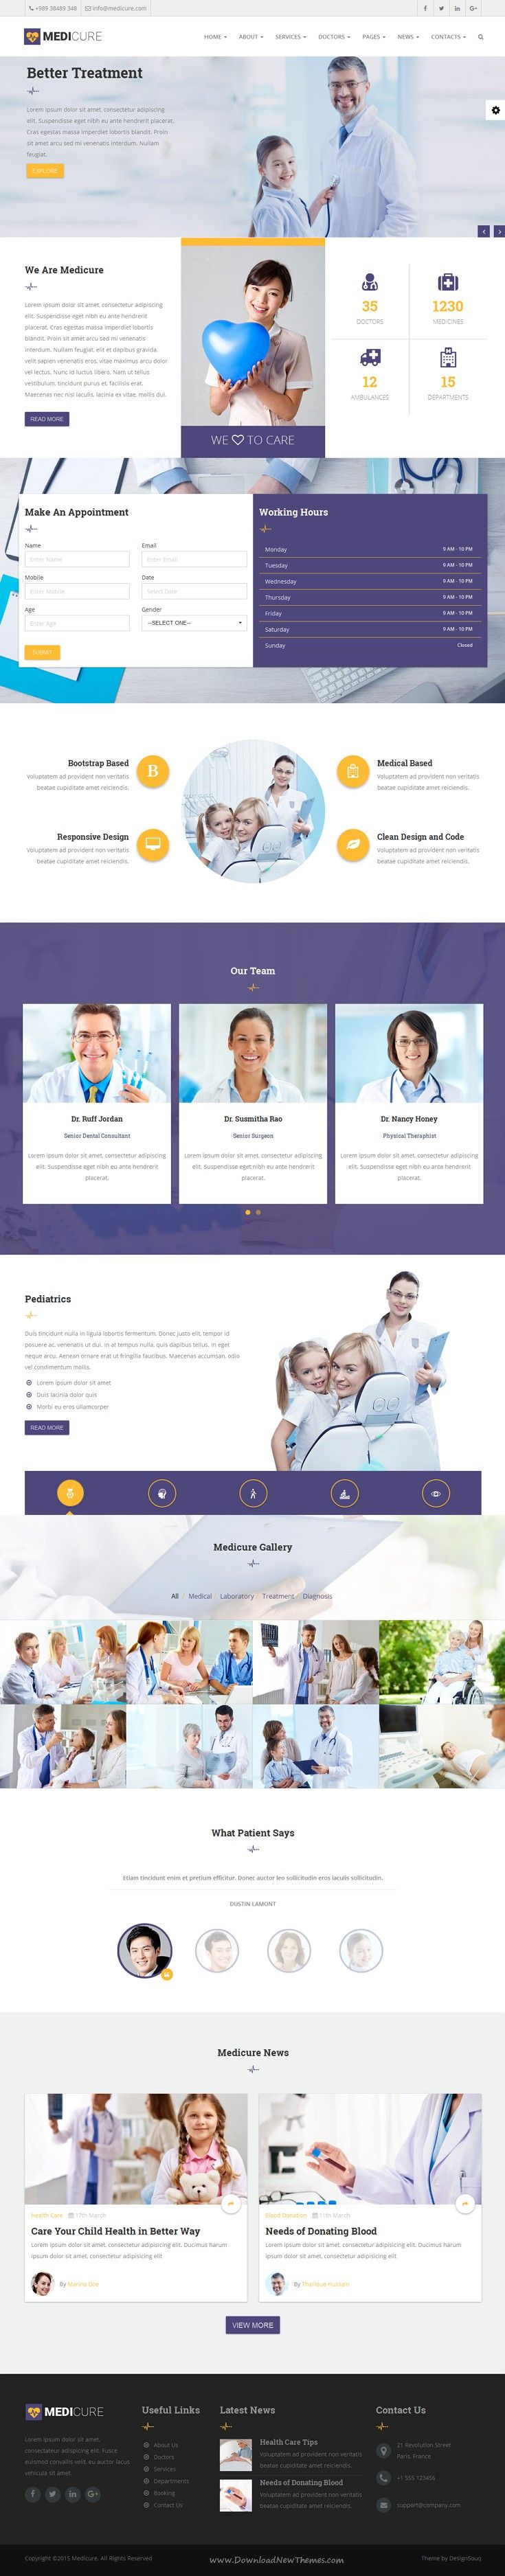 Medicure Is Wonderful Bootstrap HTML Template Suitable For Medical - Bootstrap html email templates